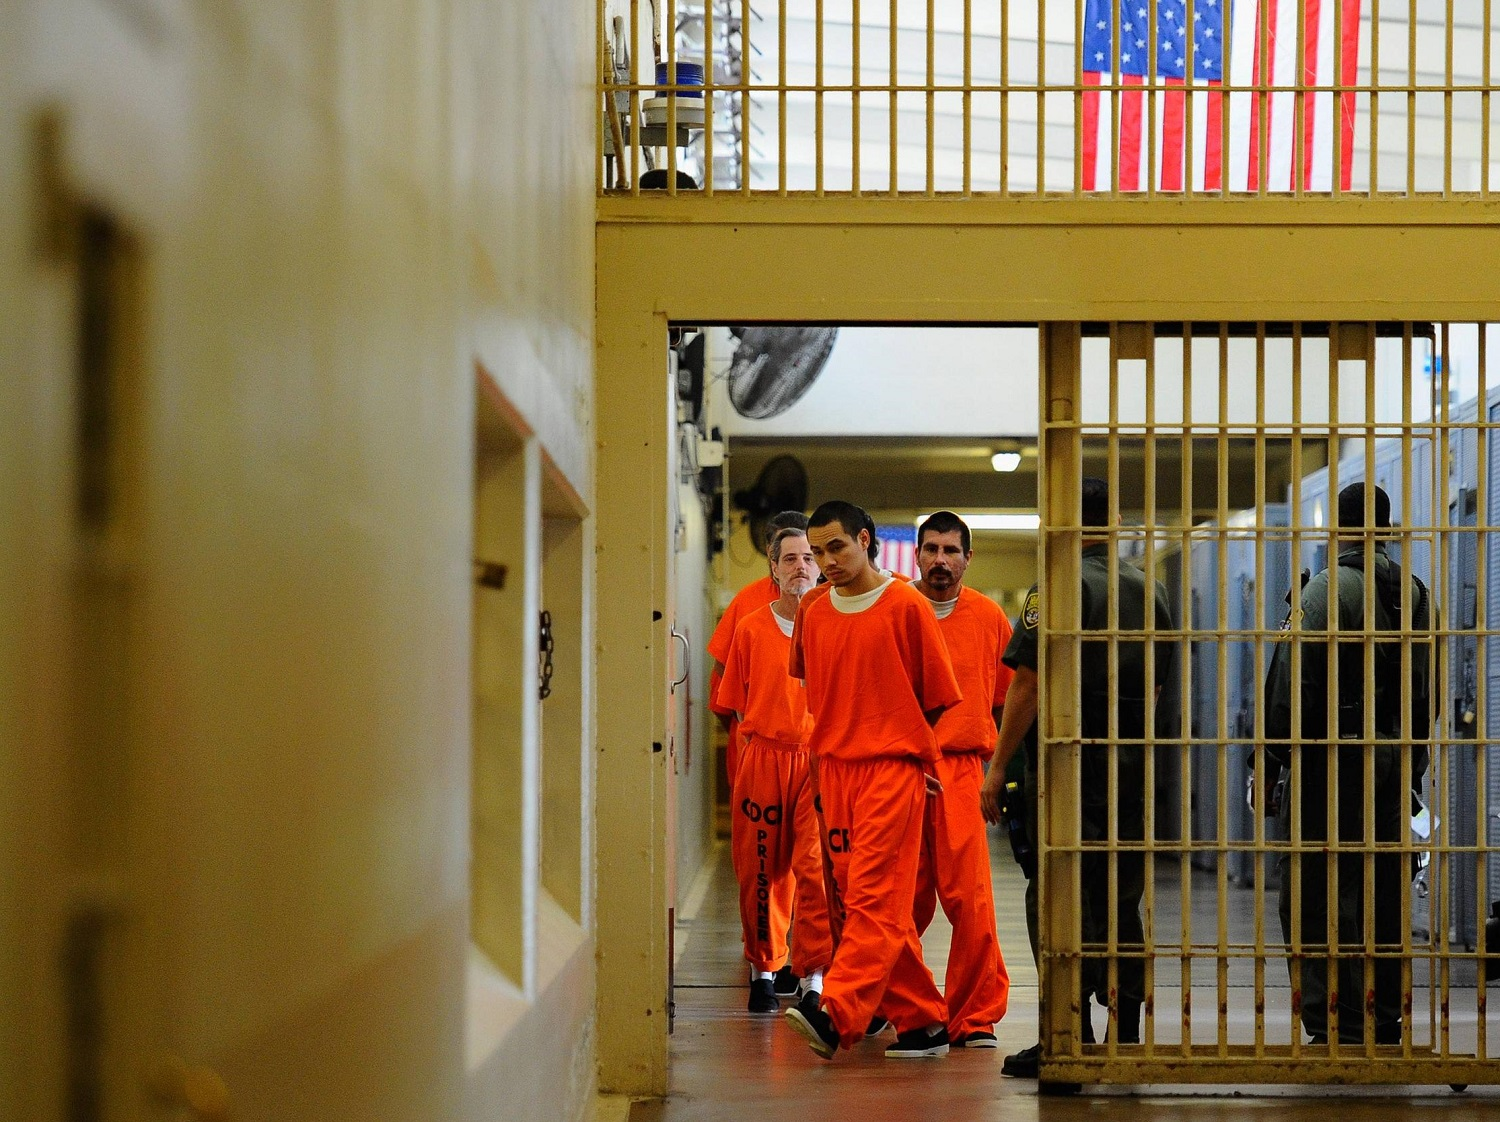 prison essays A prison can be defined as a facility that is set up under the authority of a state within these facilities, individuals who have been sentenced for criminal activity are forcibly denied a large number of freedoms and placed within the confines of the prison.